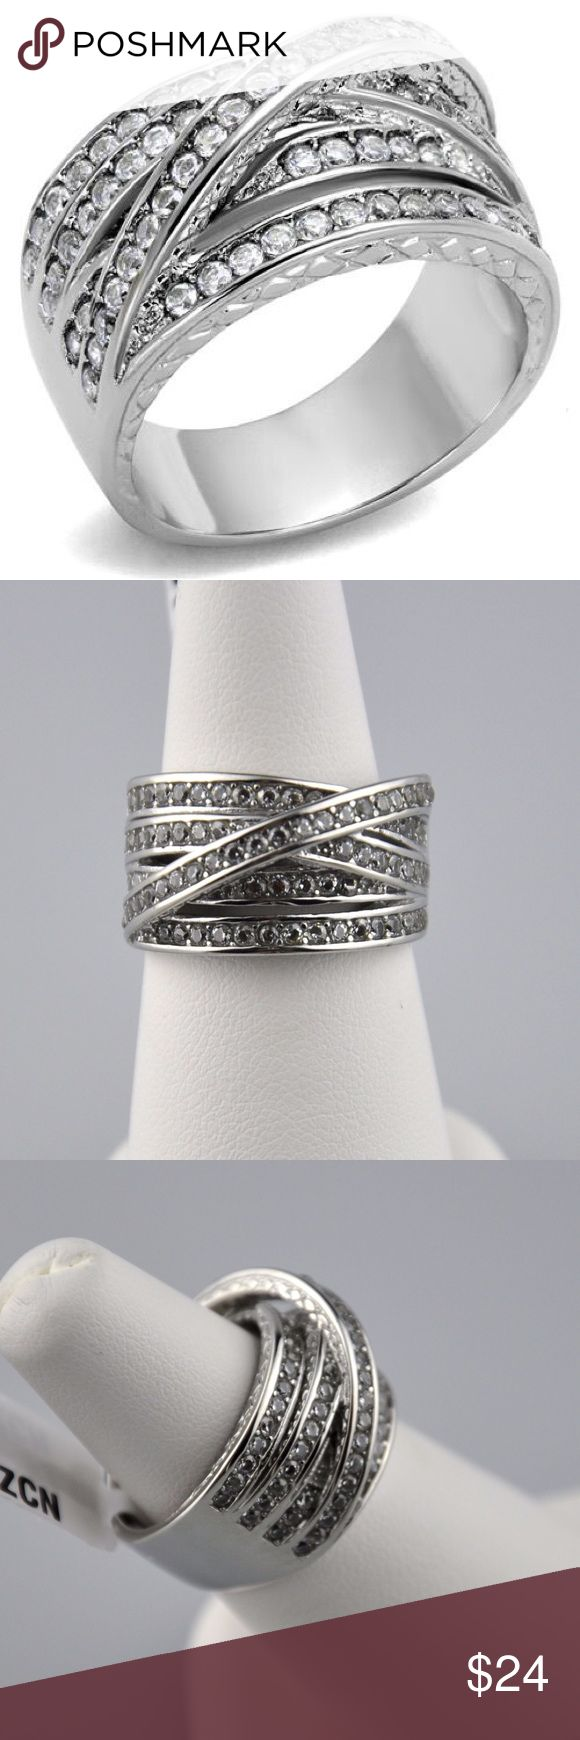 AAA Cubic Zirconia Stainless Steel Statement Ring This is a truly unique ring. Multiple lines of clear cubic zirconia stones offer tons of sparkle. The perfect finishing touch to any outfit. All set in a stainless steel band. Stainless steel is hypoallergenic, easy to care for, will not tarnish and will not turn you finger green. Smoke free pet friendly home. Jennies Jewelry Chest Jewelry Rings